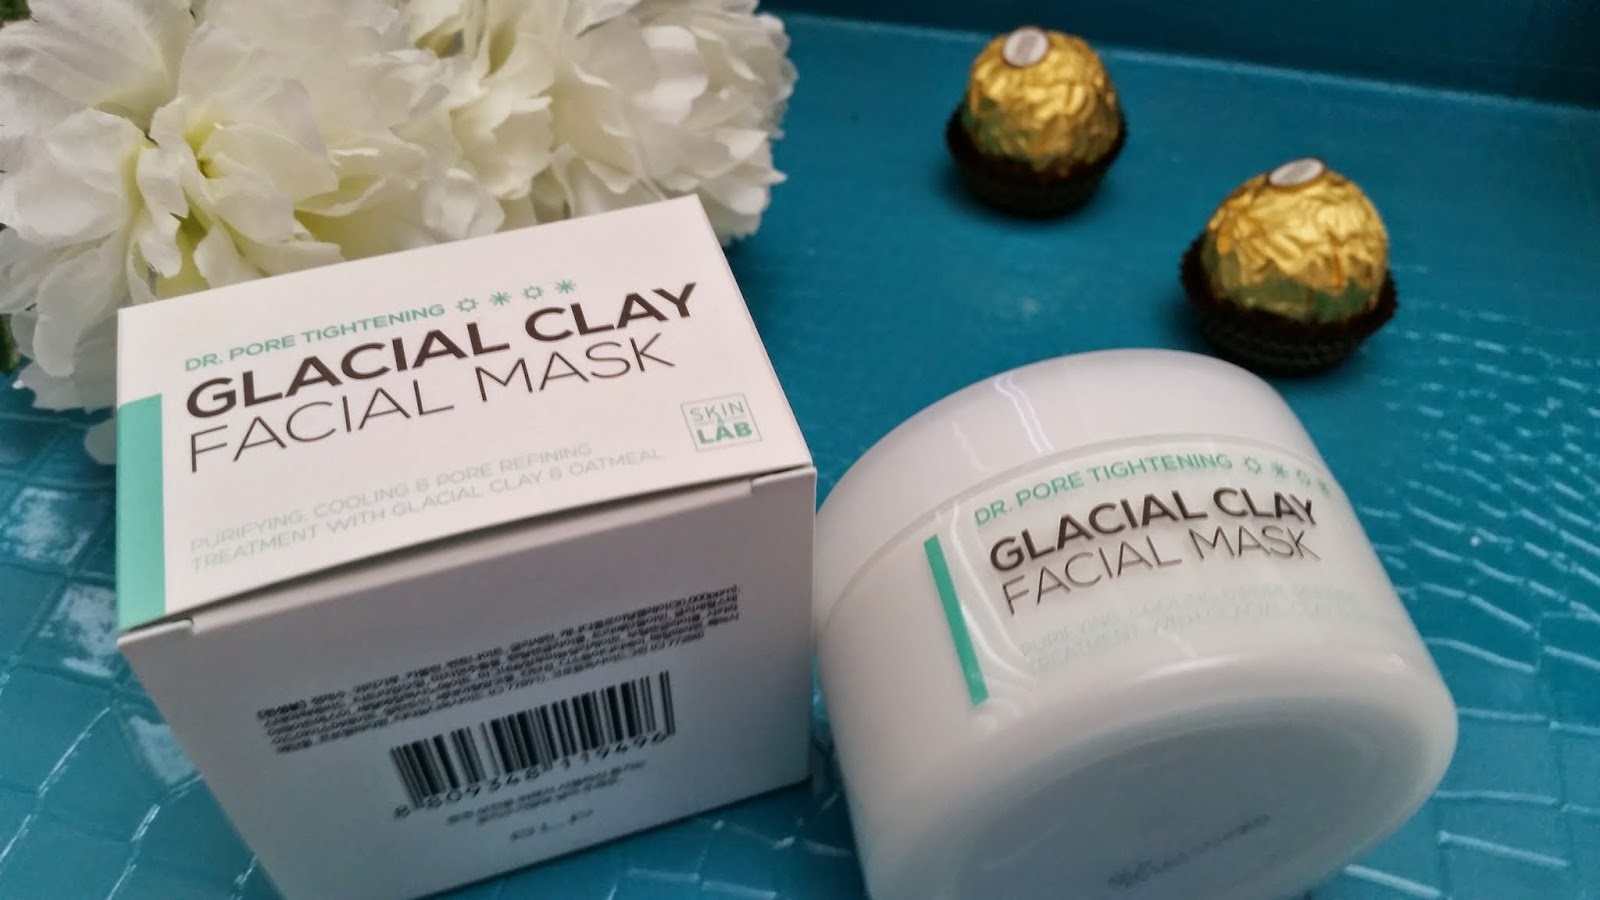 Skin&Lab Dr. Pore Tightening: Glacial Clay Facial Mask Review